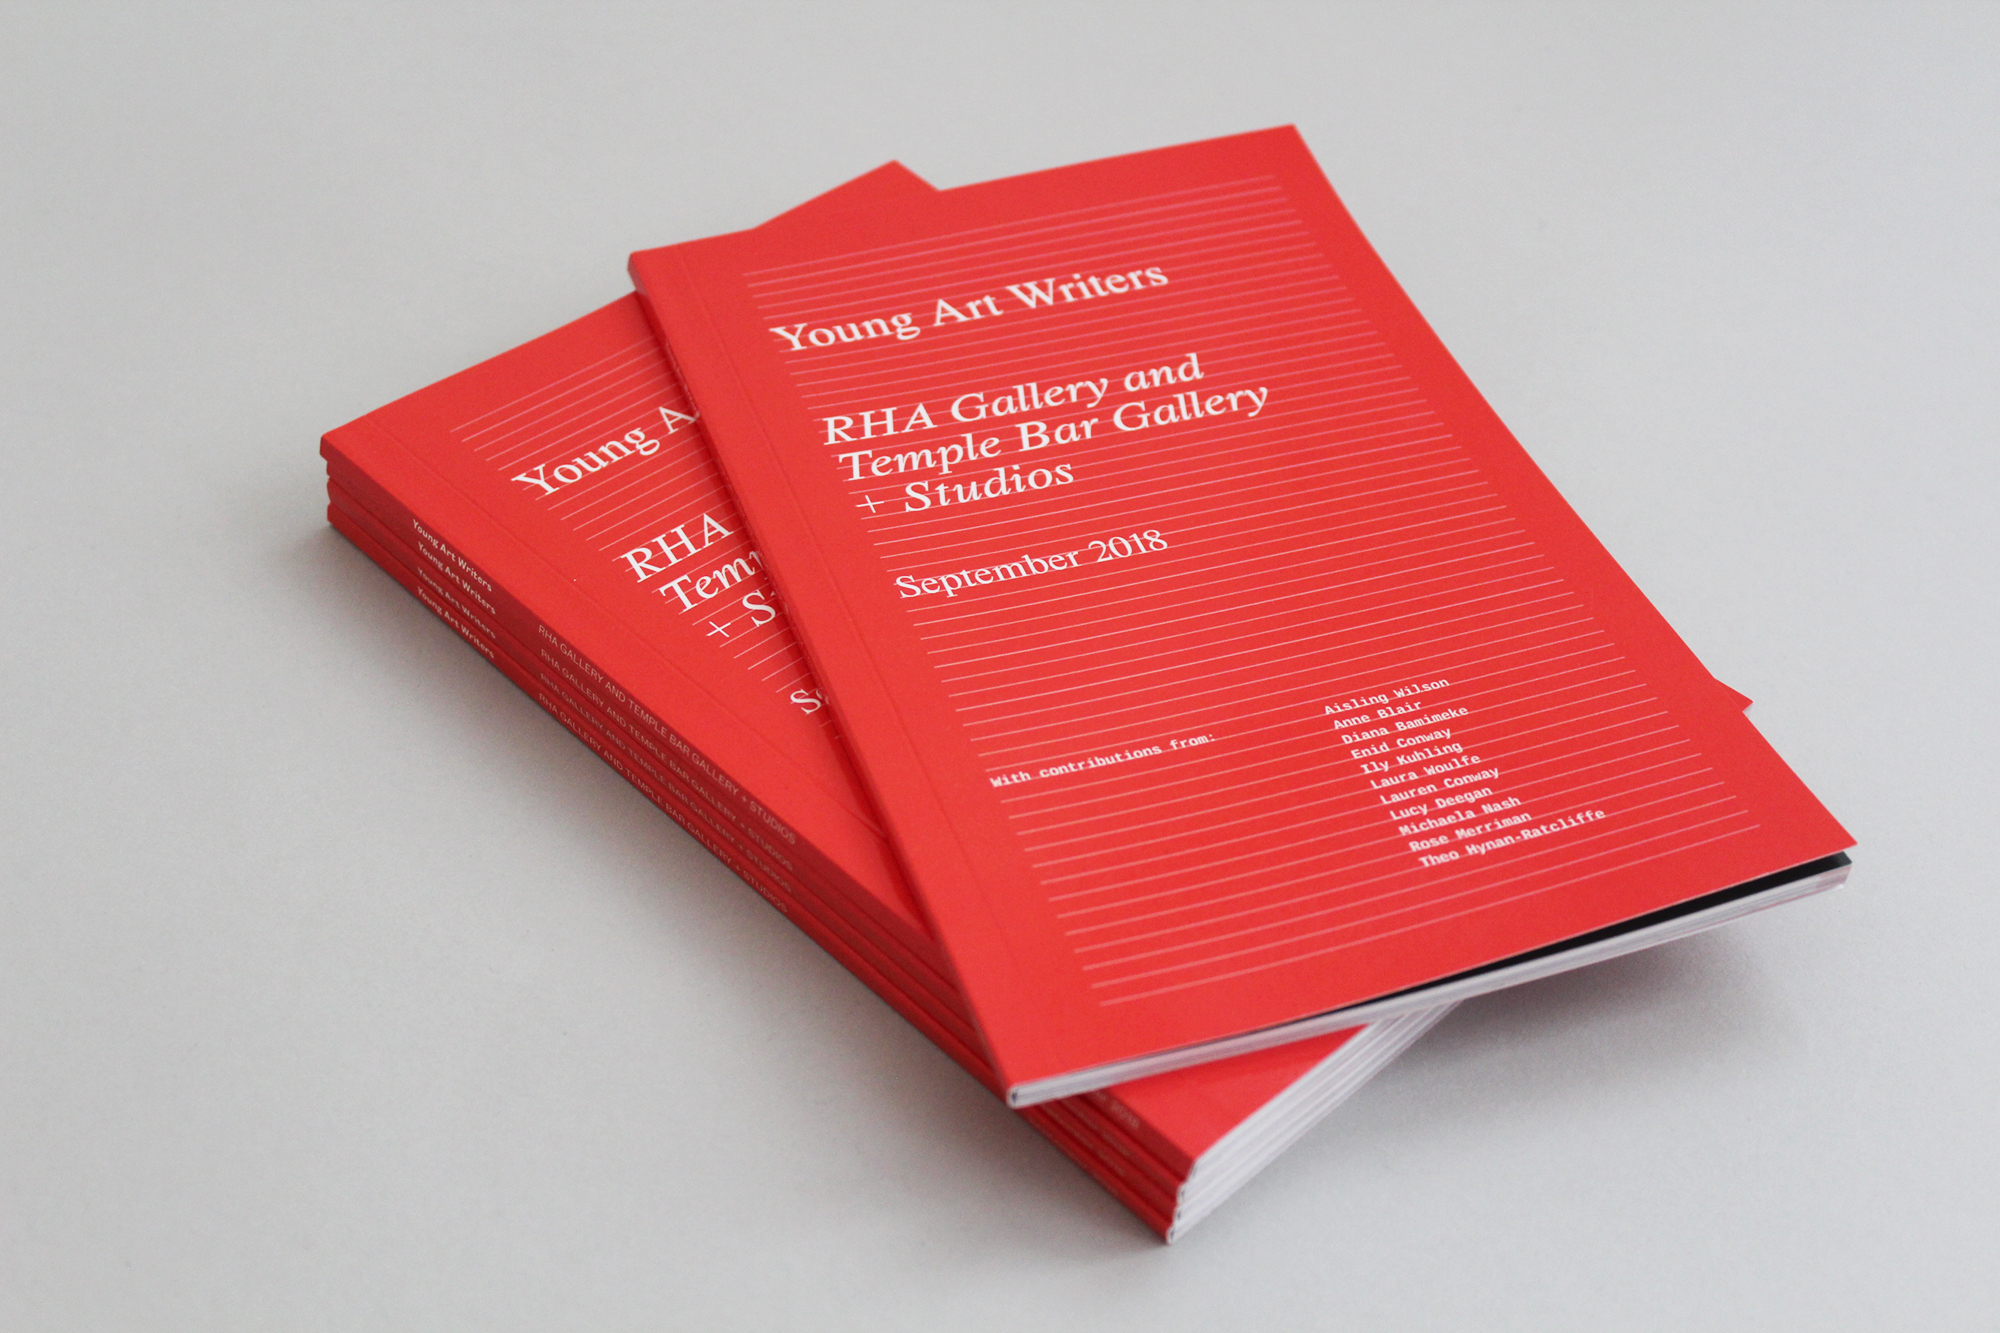 Cover image: Young Art Writers